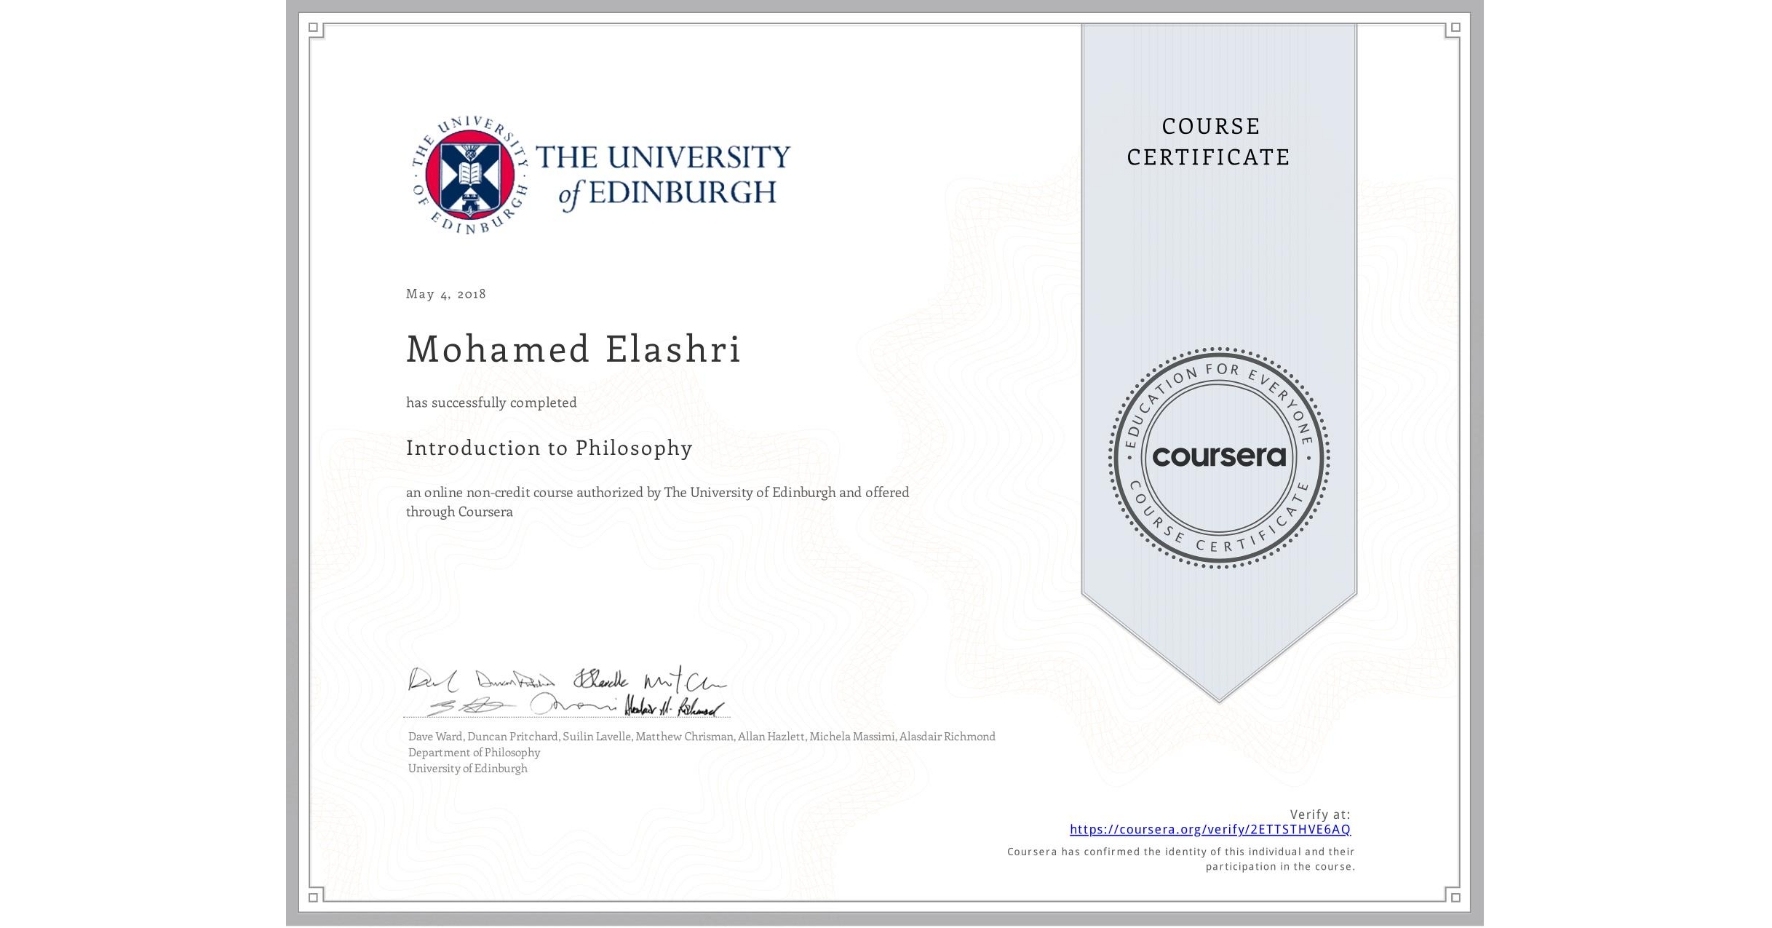 View certificate for Mohamed Elashri, Introduction to Philosophy, an online non-credit course authorized by The University of Edinburgh and offered through Coursera